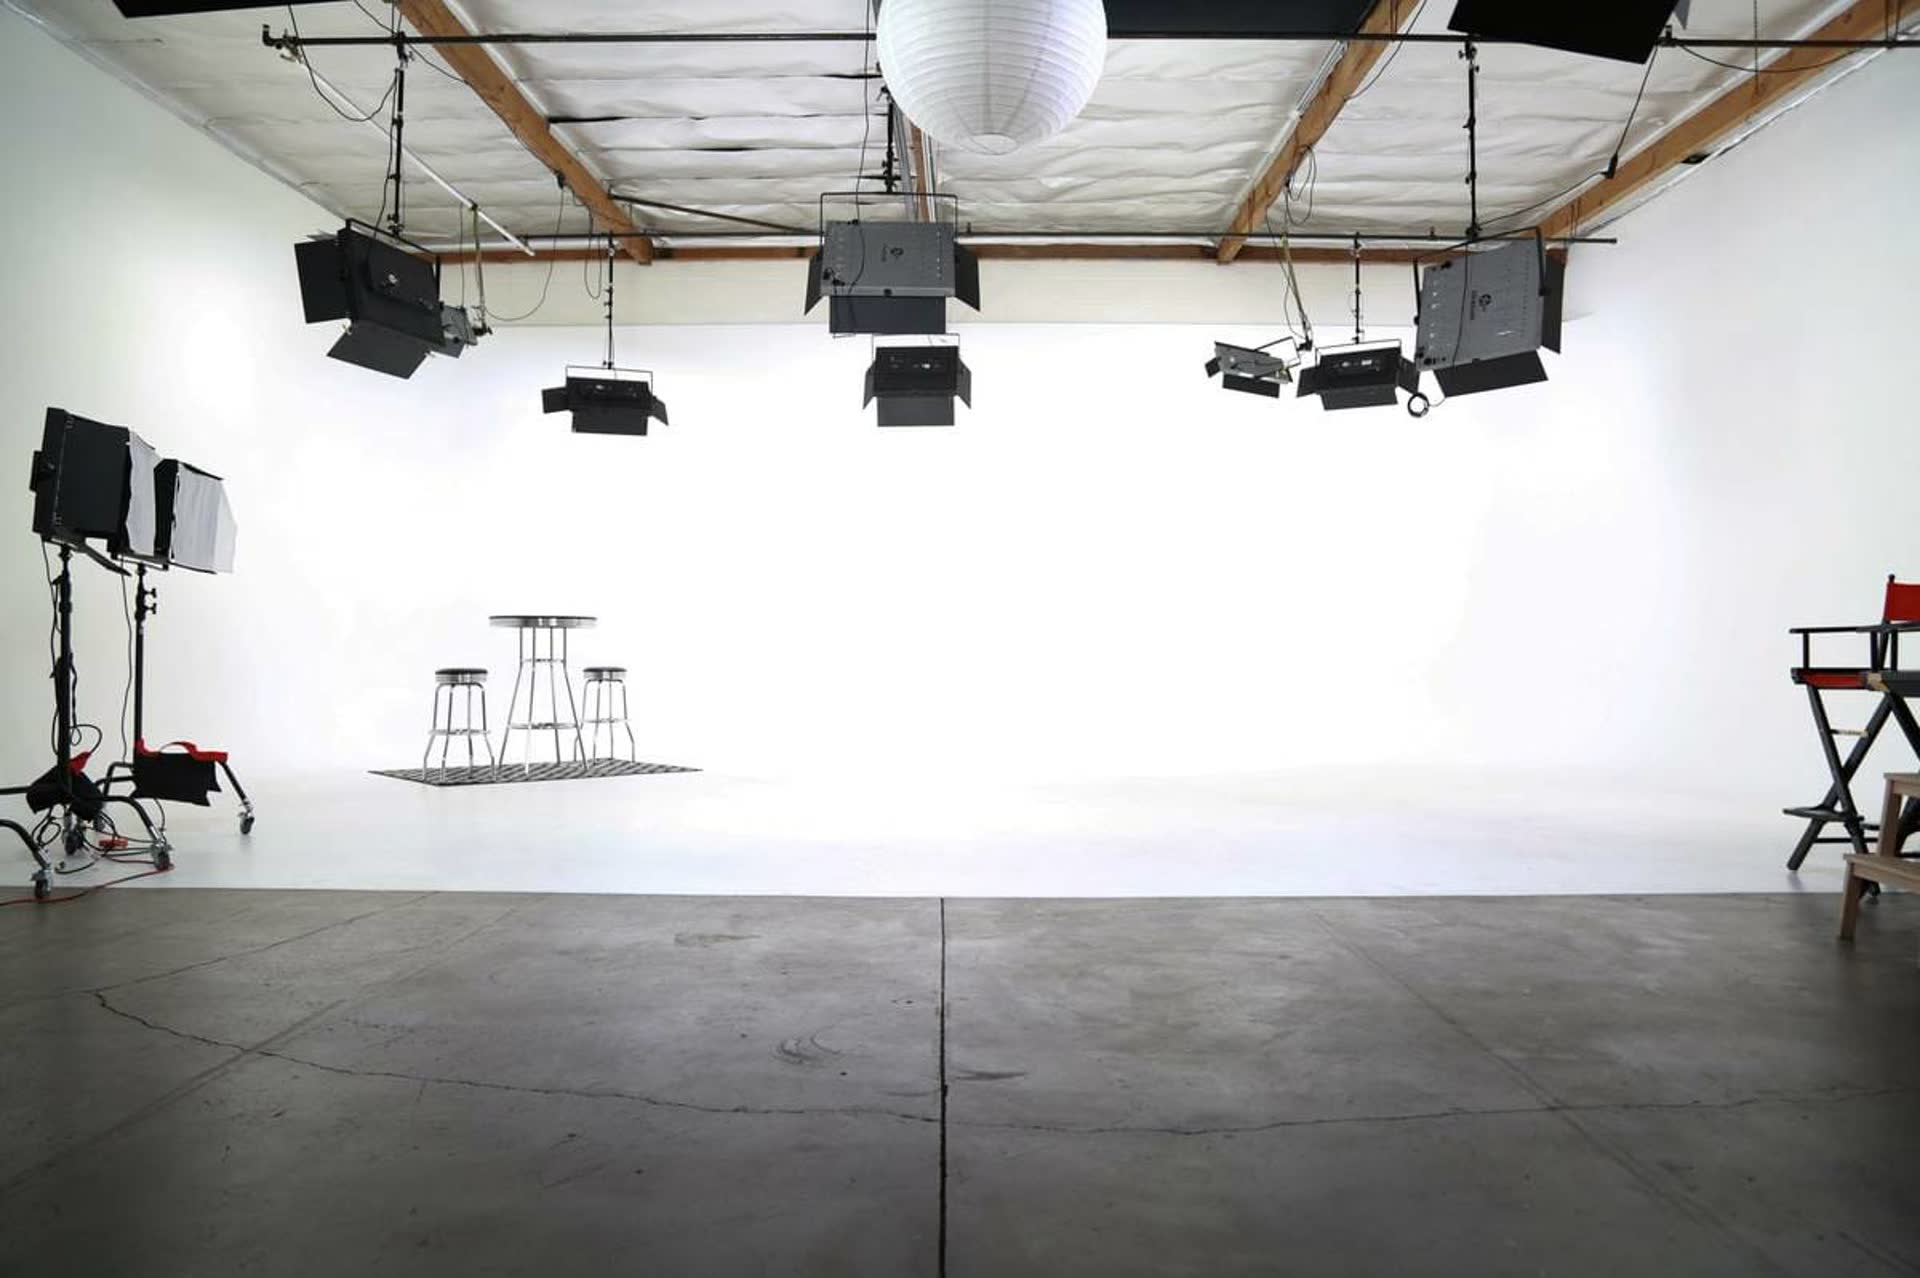 Music Video spaces